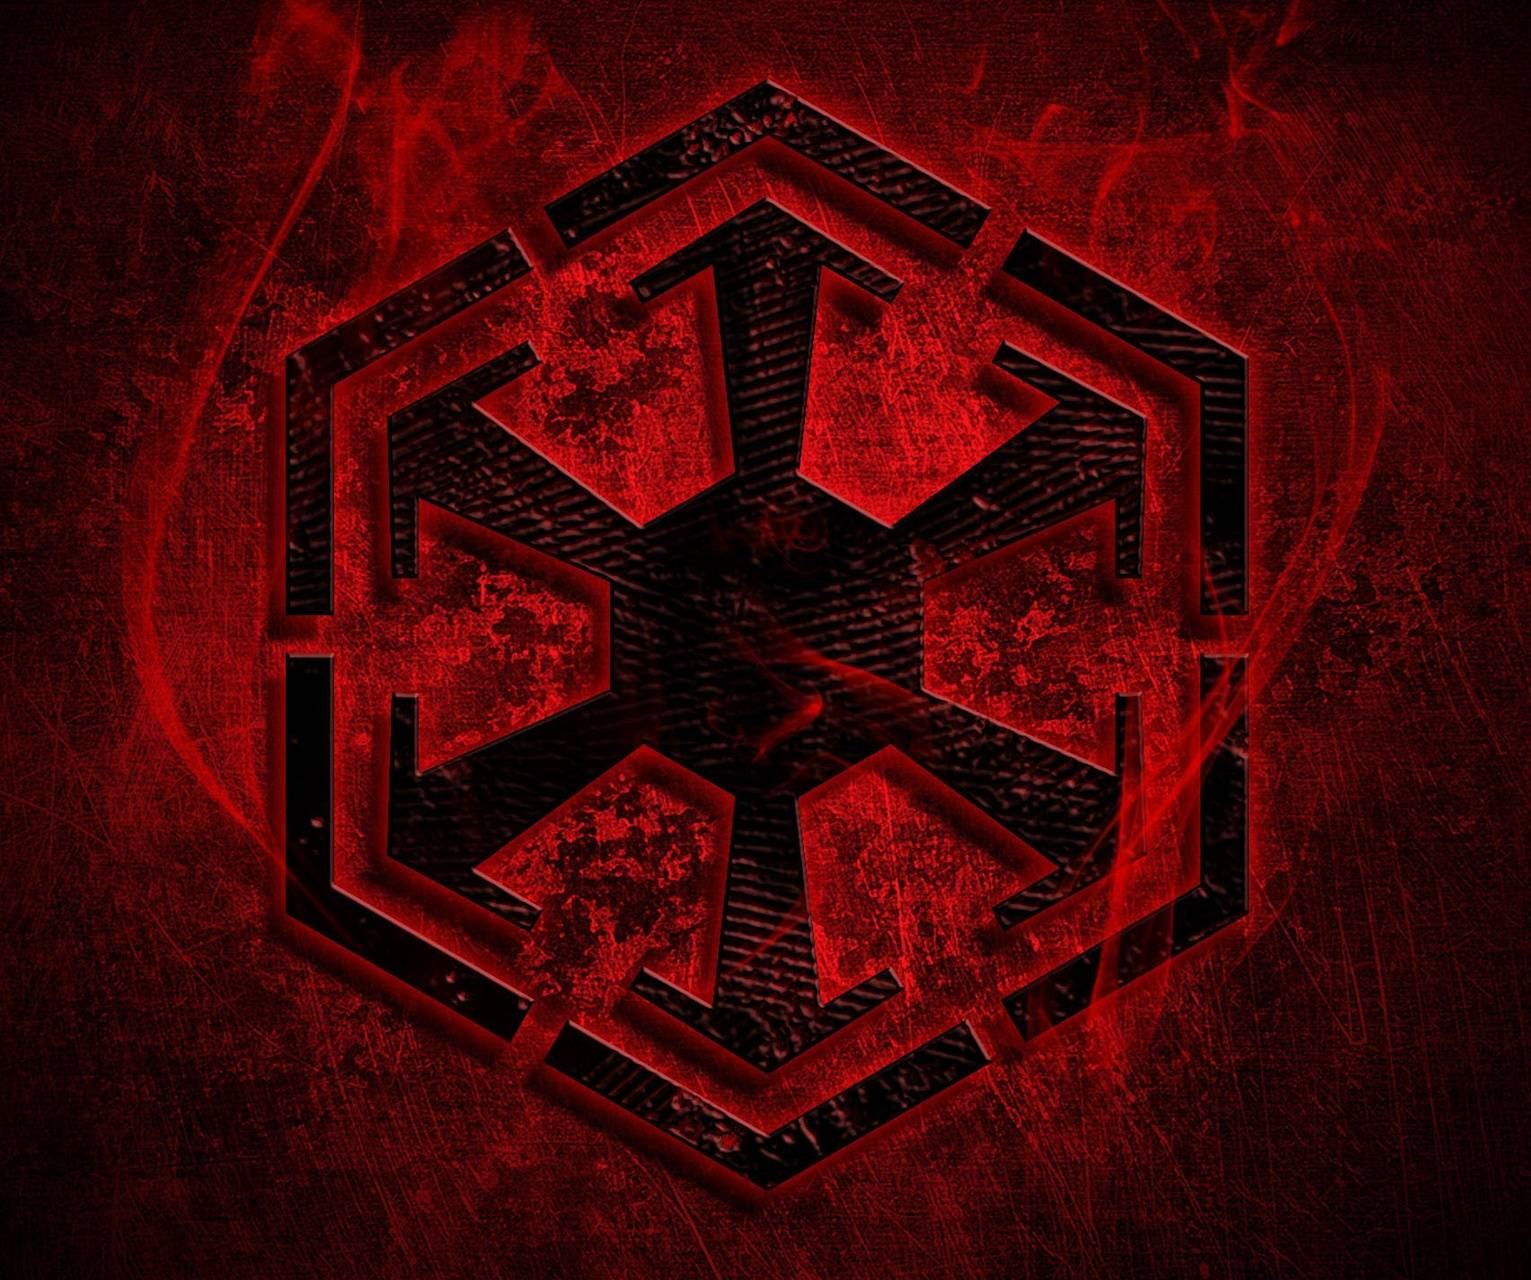 Galactic Empire Wallpaper By Pinkspider1998 Af Free On Zedge